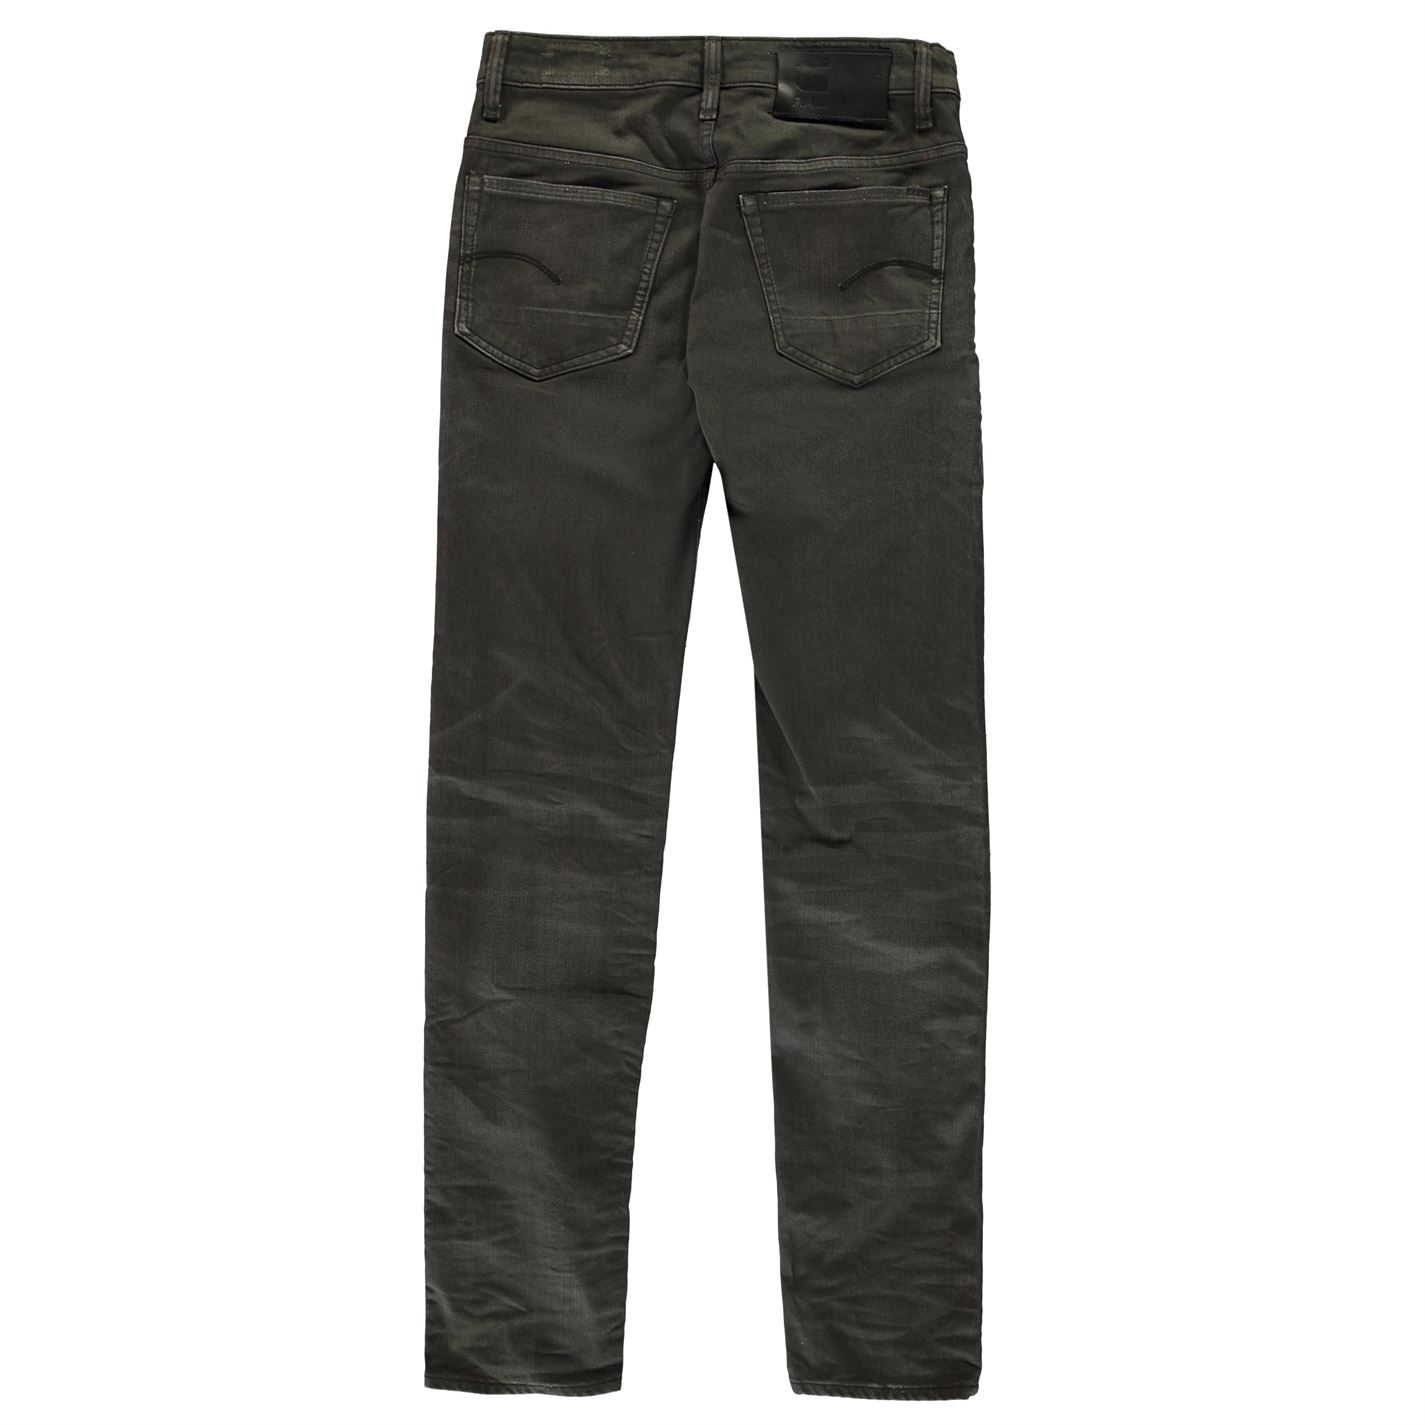 g star mens 3301 low tapered jeans straight pants trousers. Black Bedroom Furniture Sets. Home Design Ideas